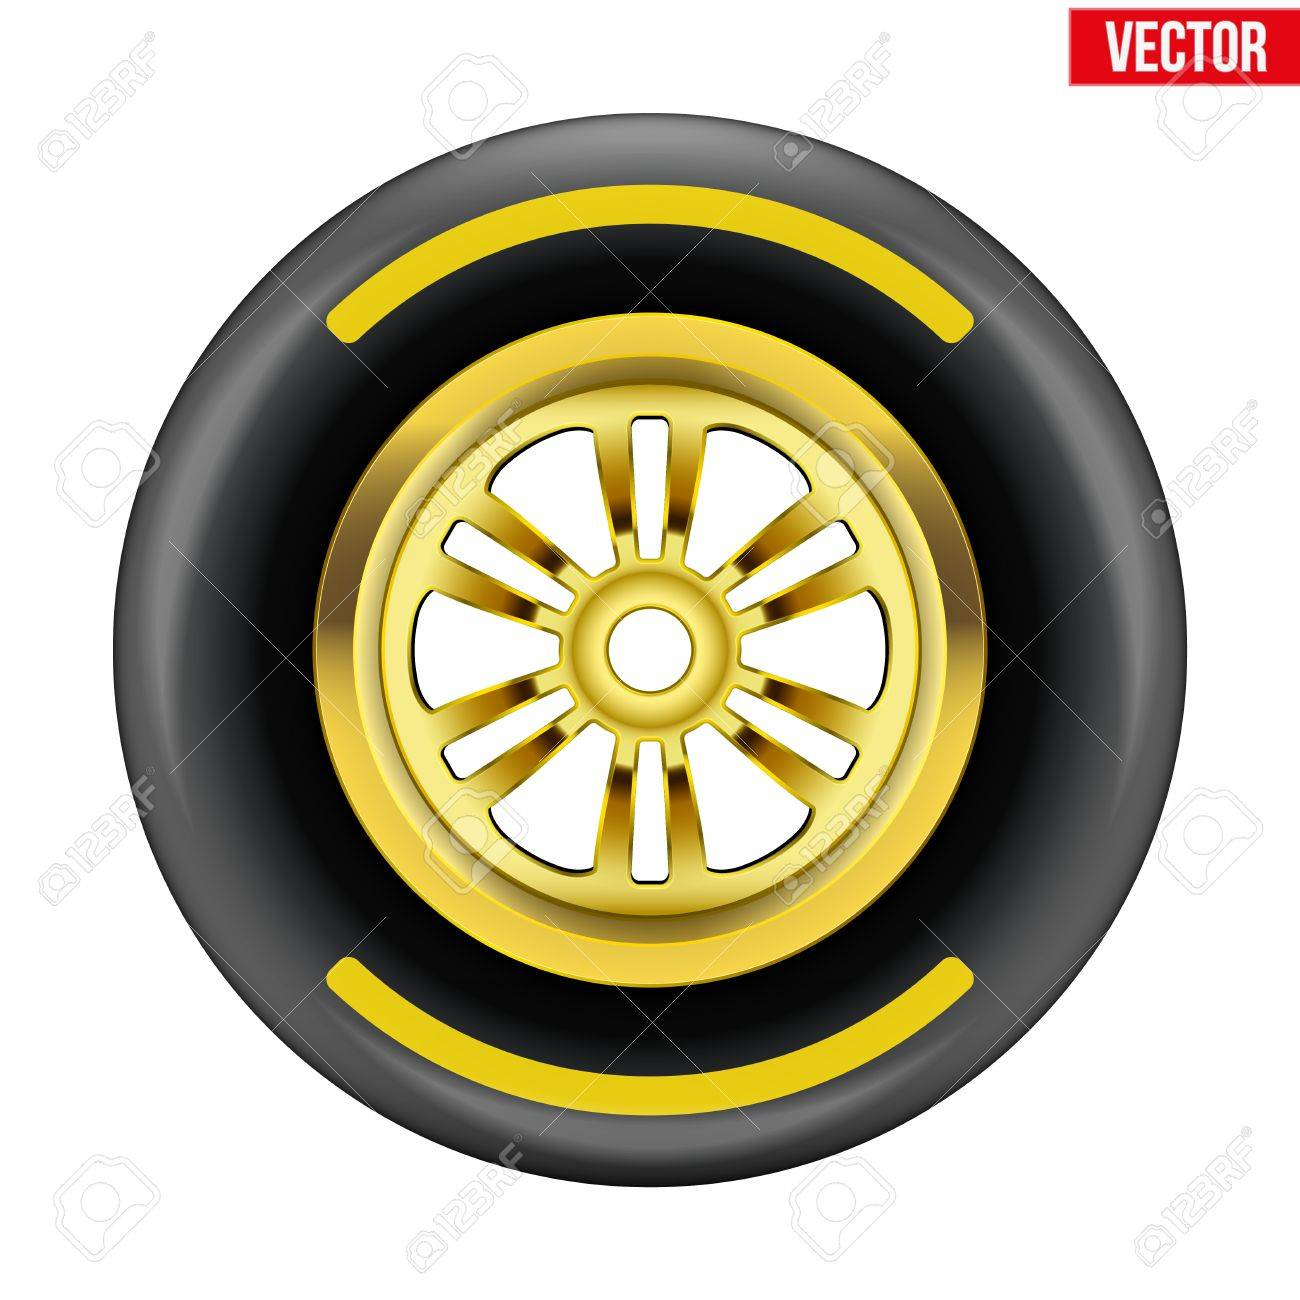 Race Wheel And Tire Symbol With Yellow Disk And Strip Vector ... for Racing Tire Vector  34eri